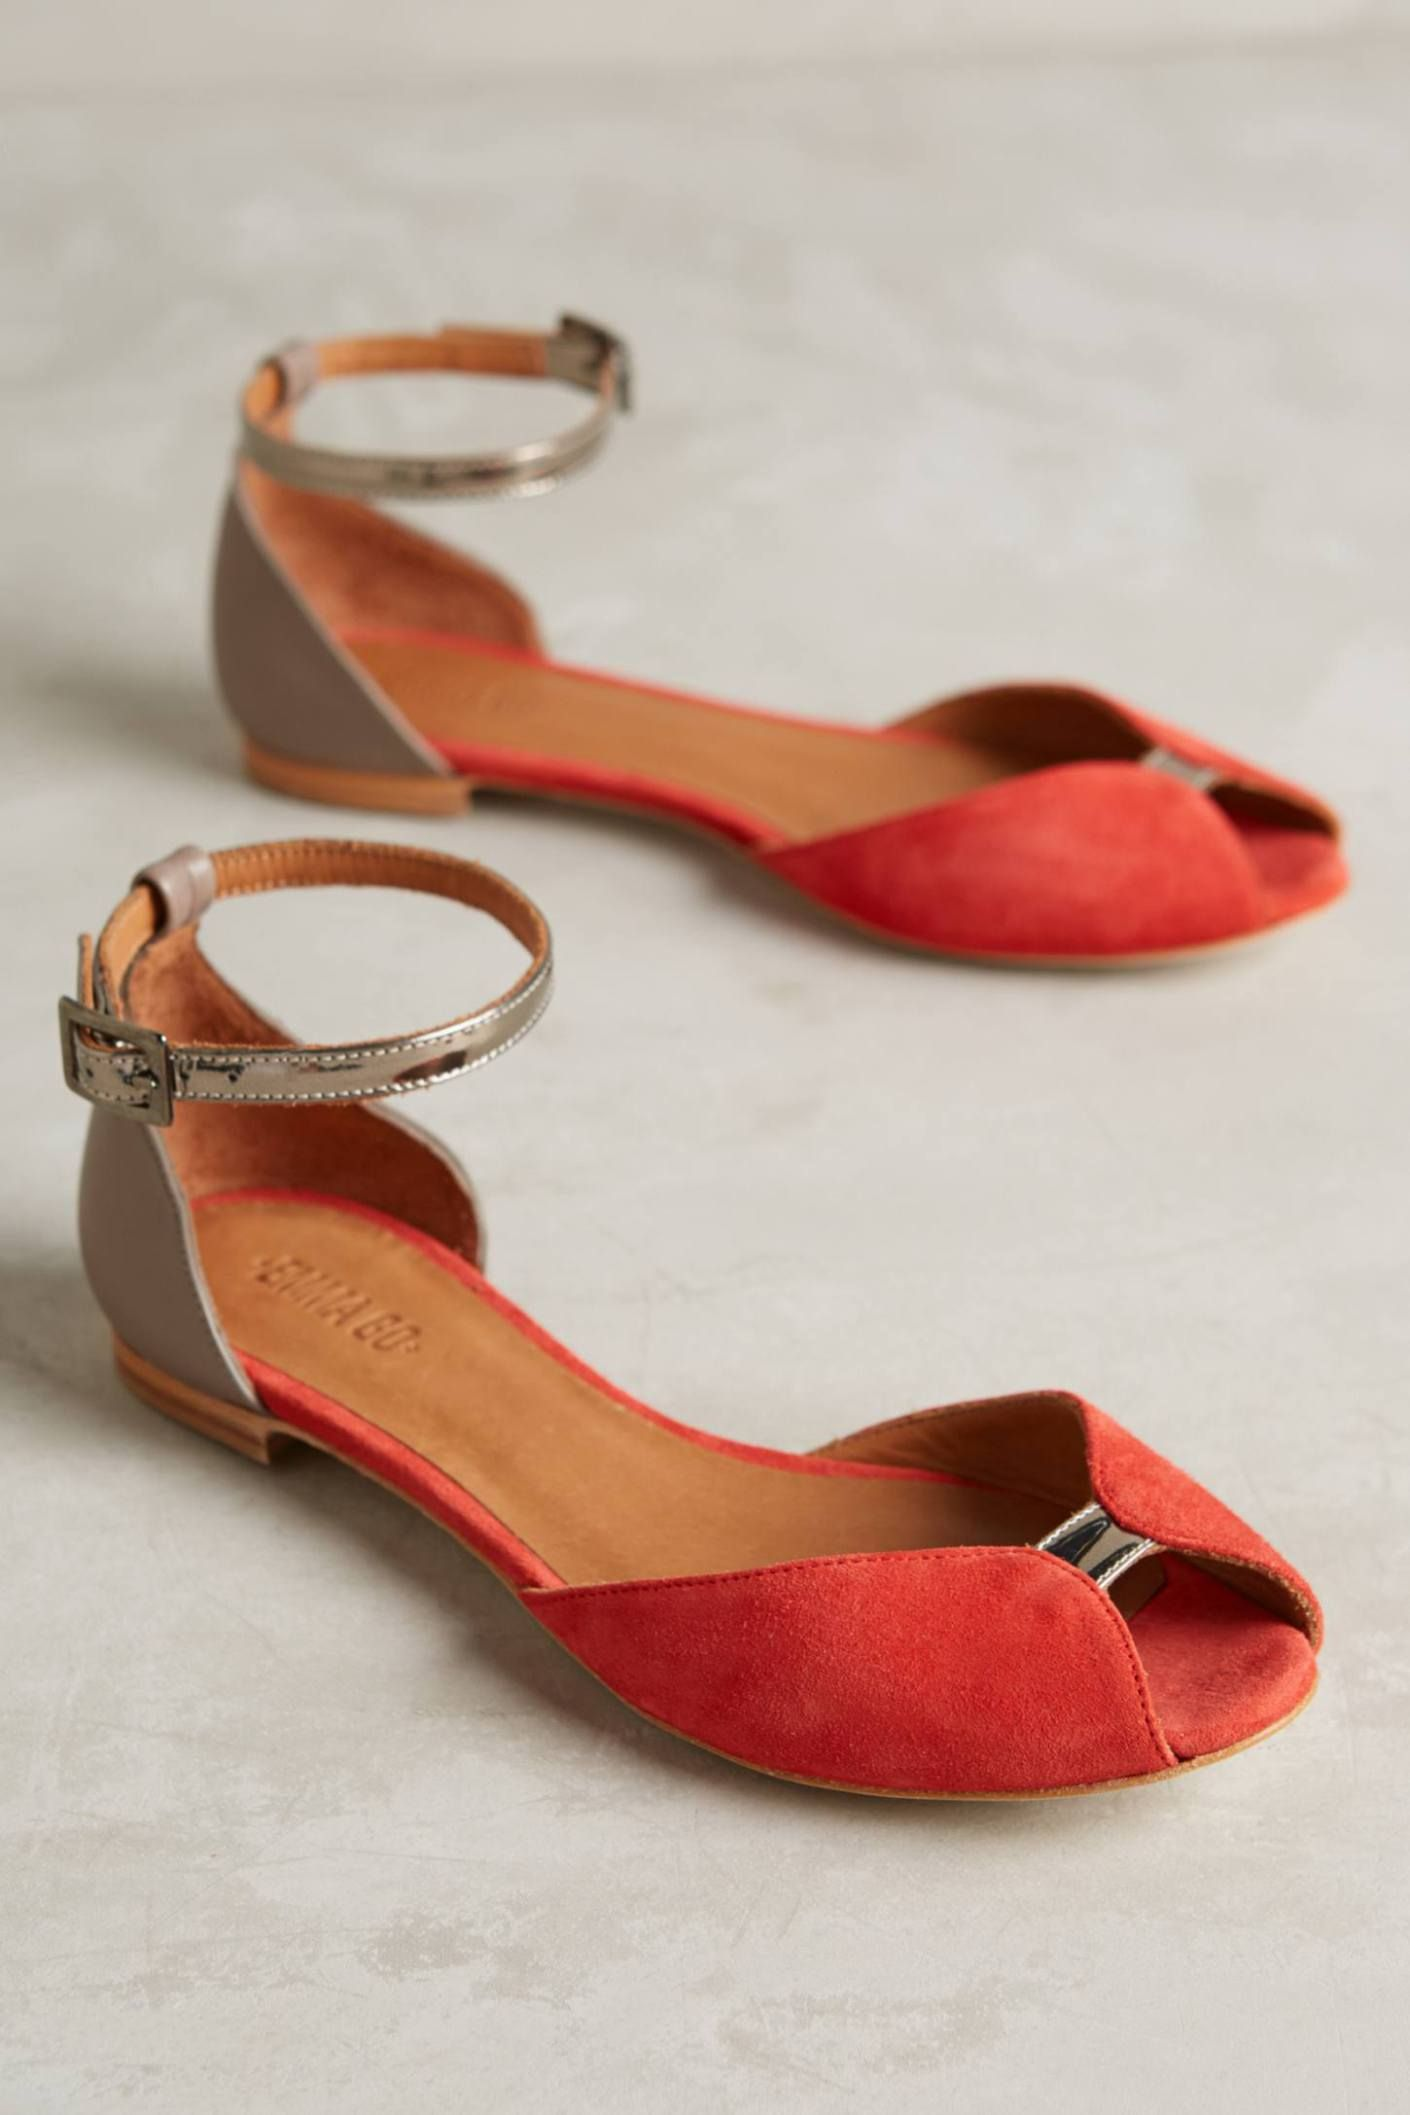 Anthropologie S New Arrivals Sandal Season Flats Cheap